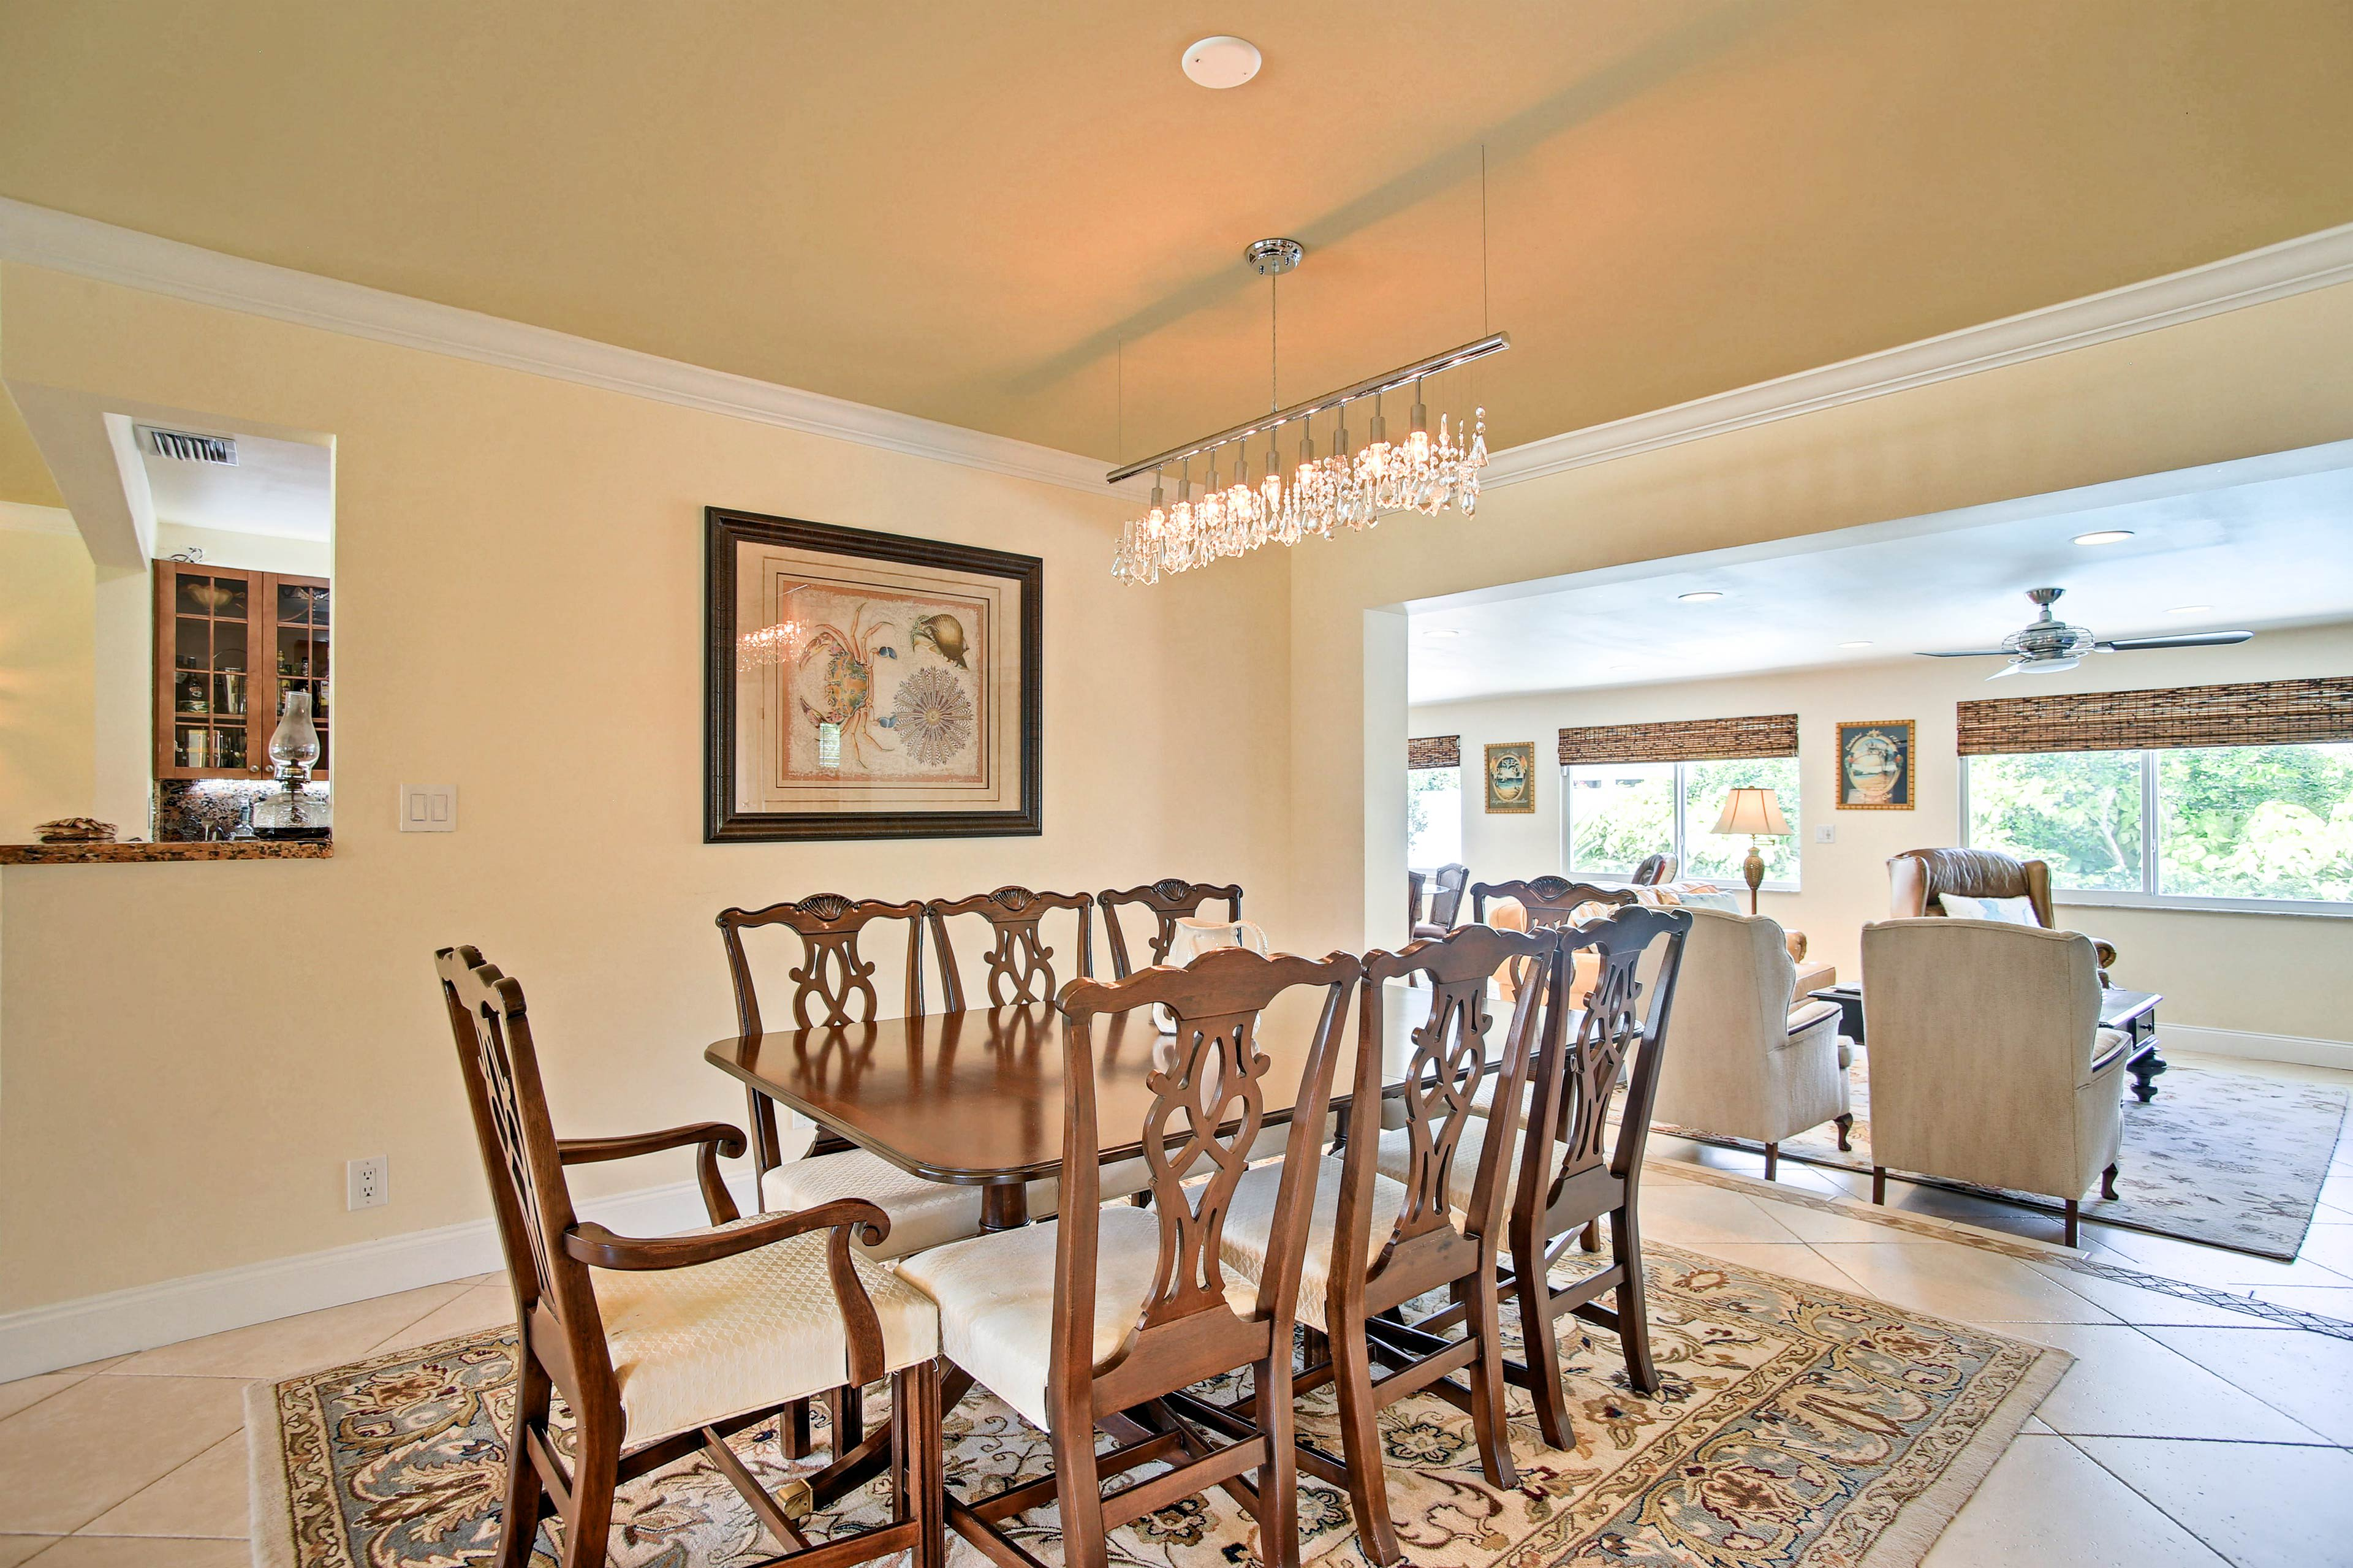 For formal family meals, gather at the stately 8-person dining table.